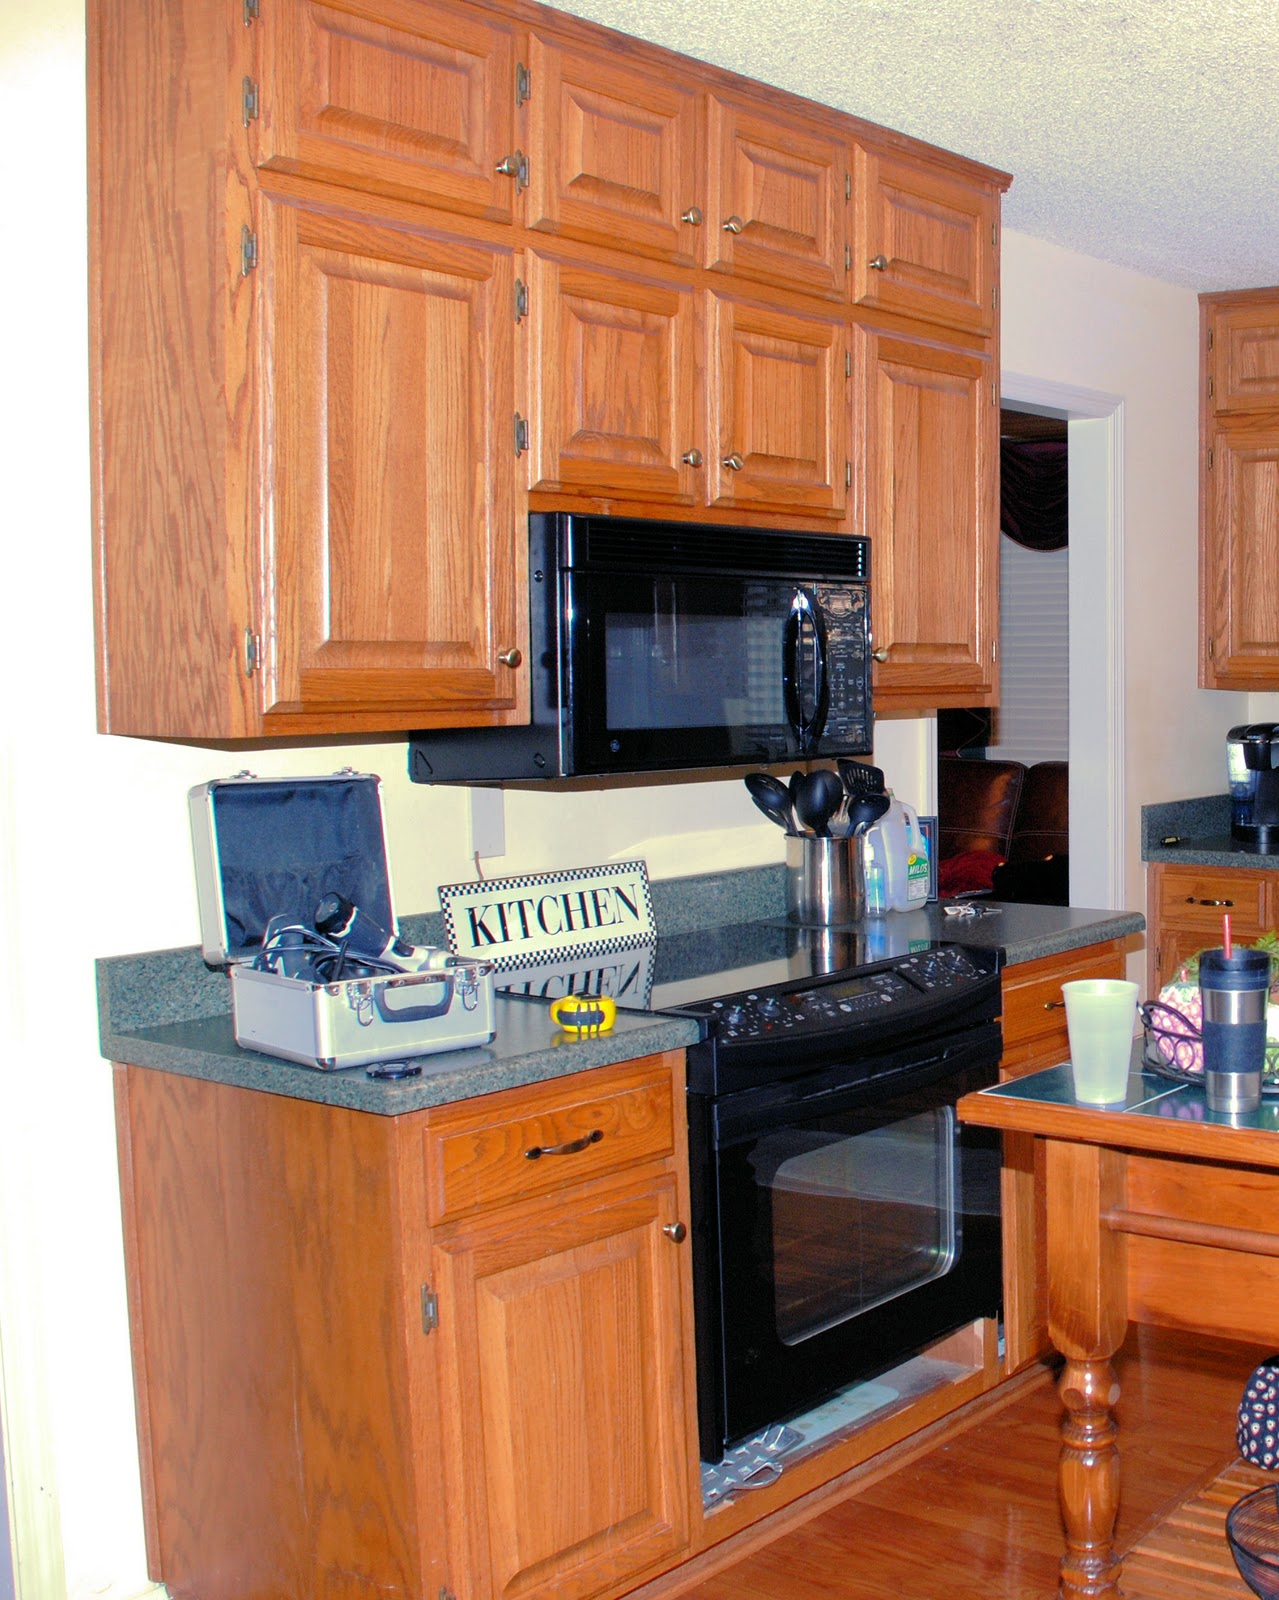 Southern inspirations my fake kitchen microwave hood for Fake kitchen set